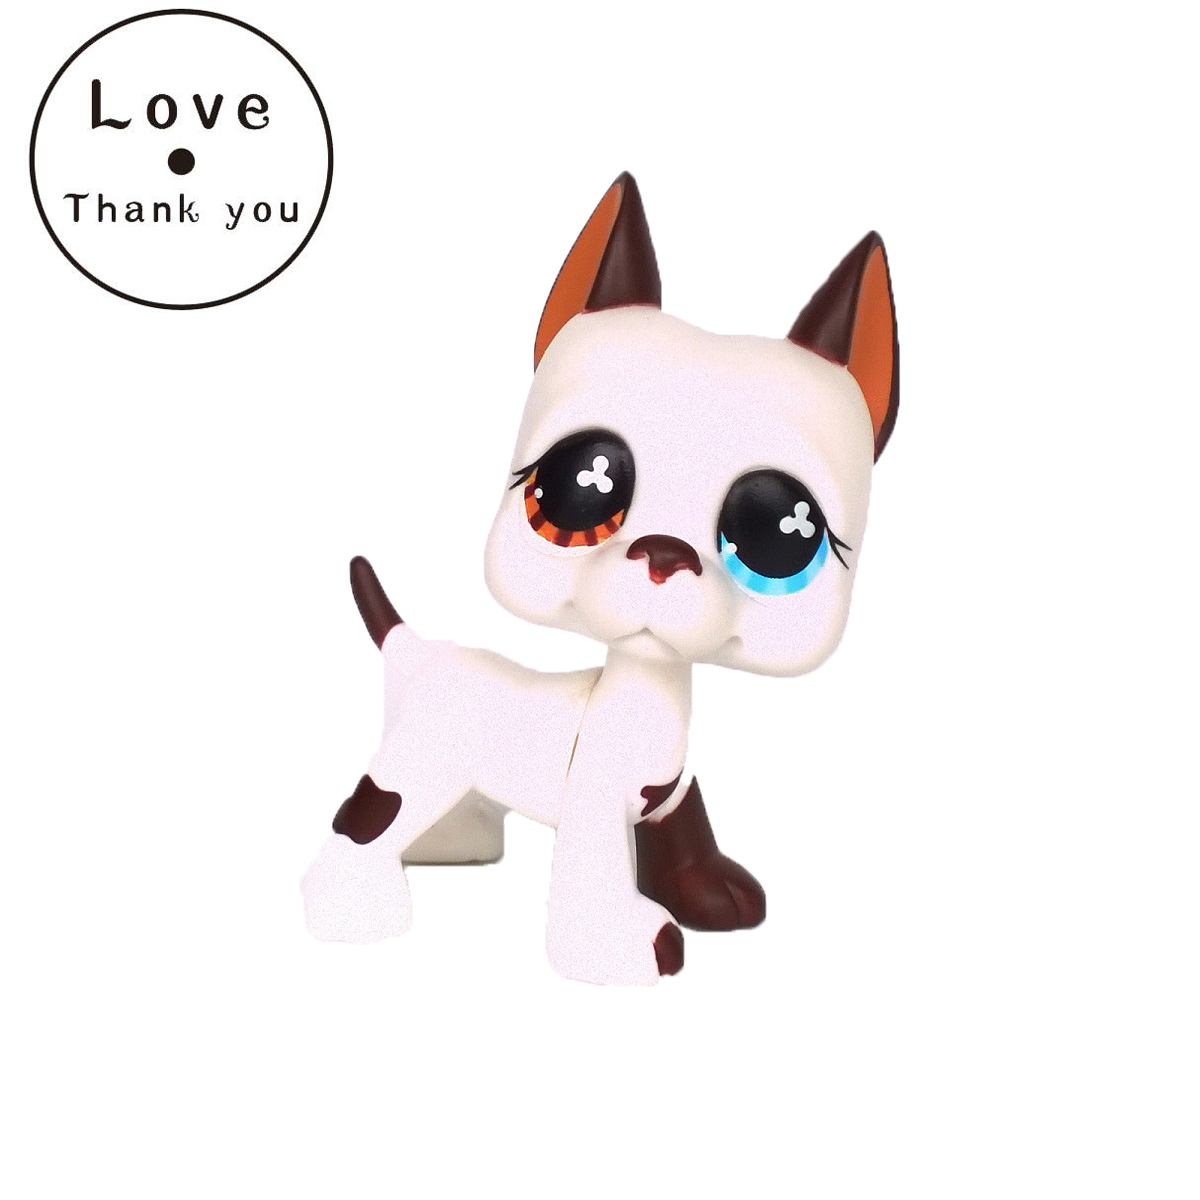 pet shop lps toys Great Dane Dog #577 Blue Brown Flowered Eyes White Puppy Figure Child Toy Without Magnet Dog Gift pet great dane 2598 pink dog red eyes